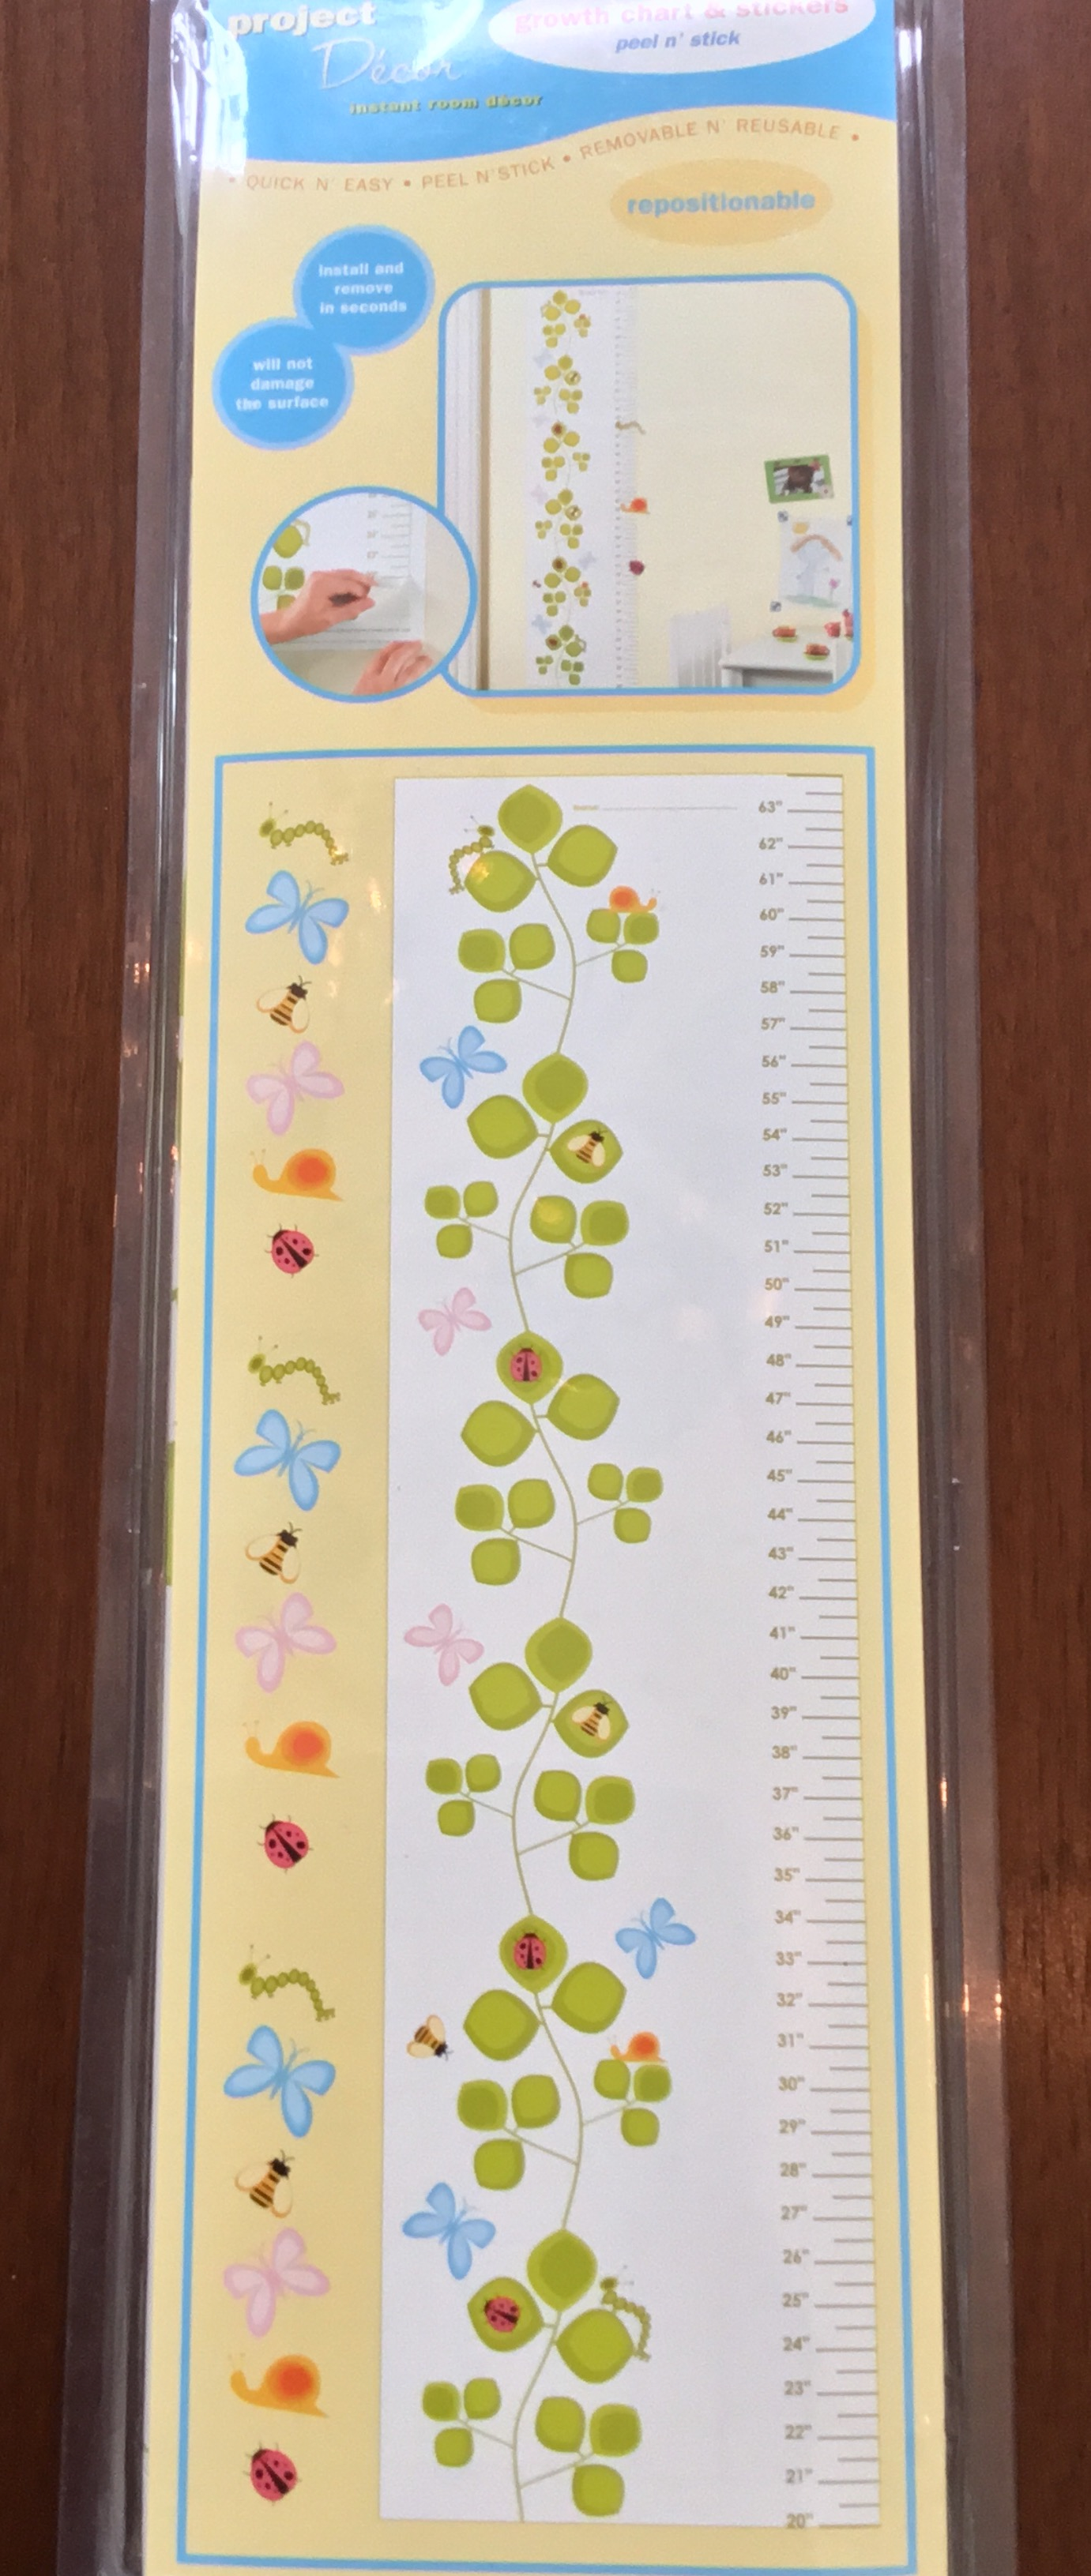 Project Decor Growth Chart NIB